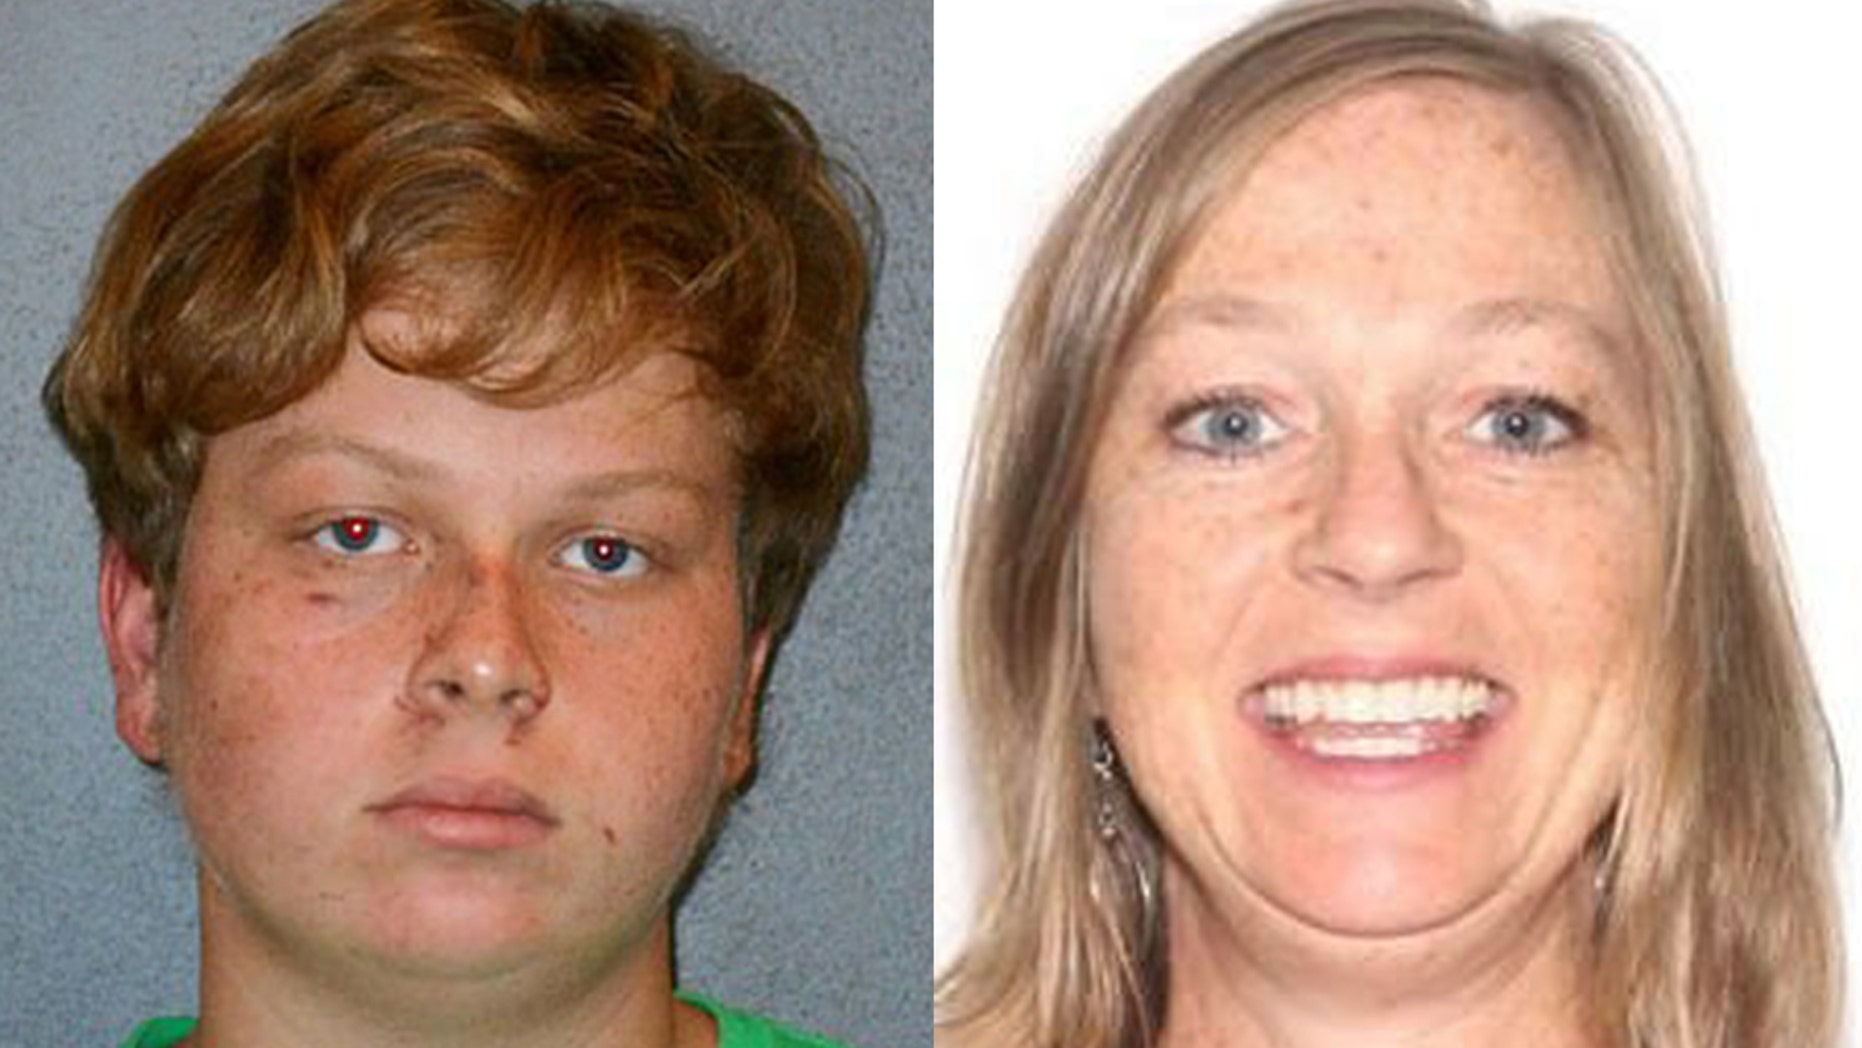 Florida Teen Killed Mom After Argument Over Grades